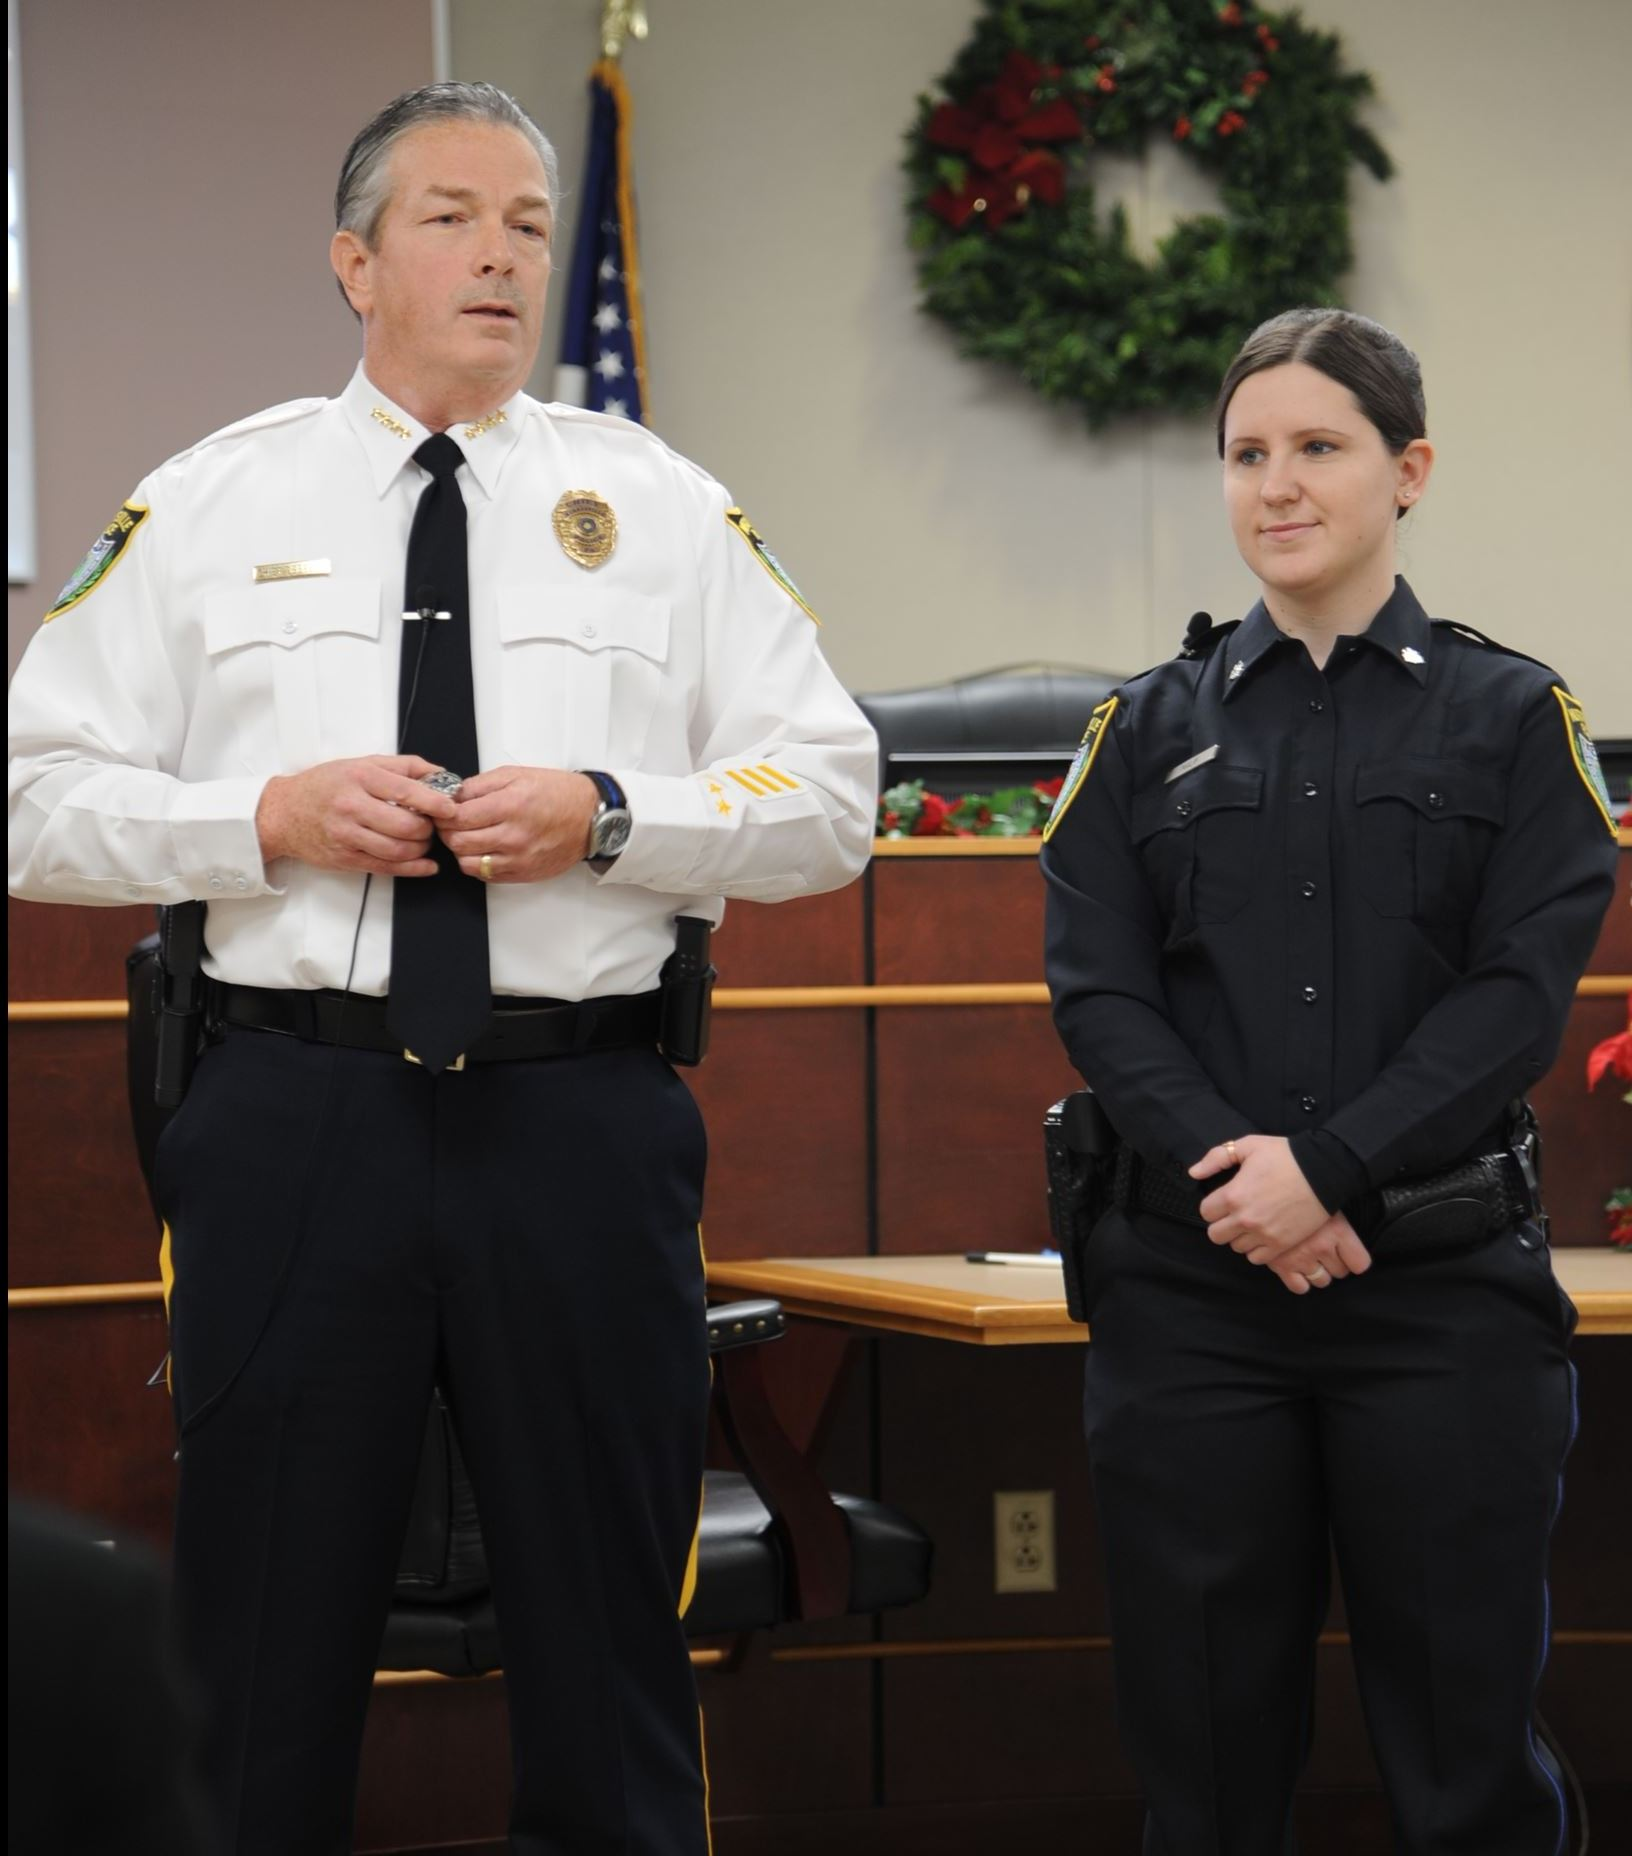 Murrysville Police Chief Tom Seefeld and Officer Samantha Malik